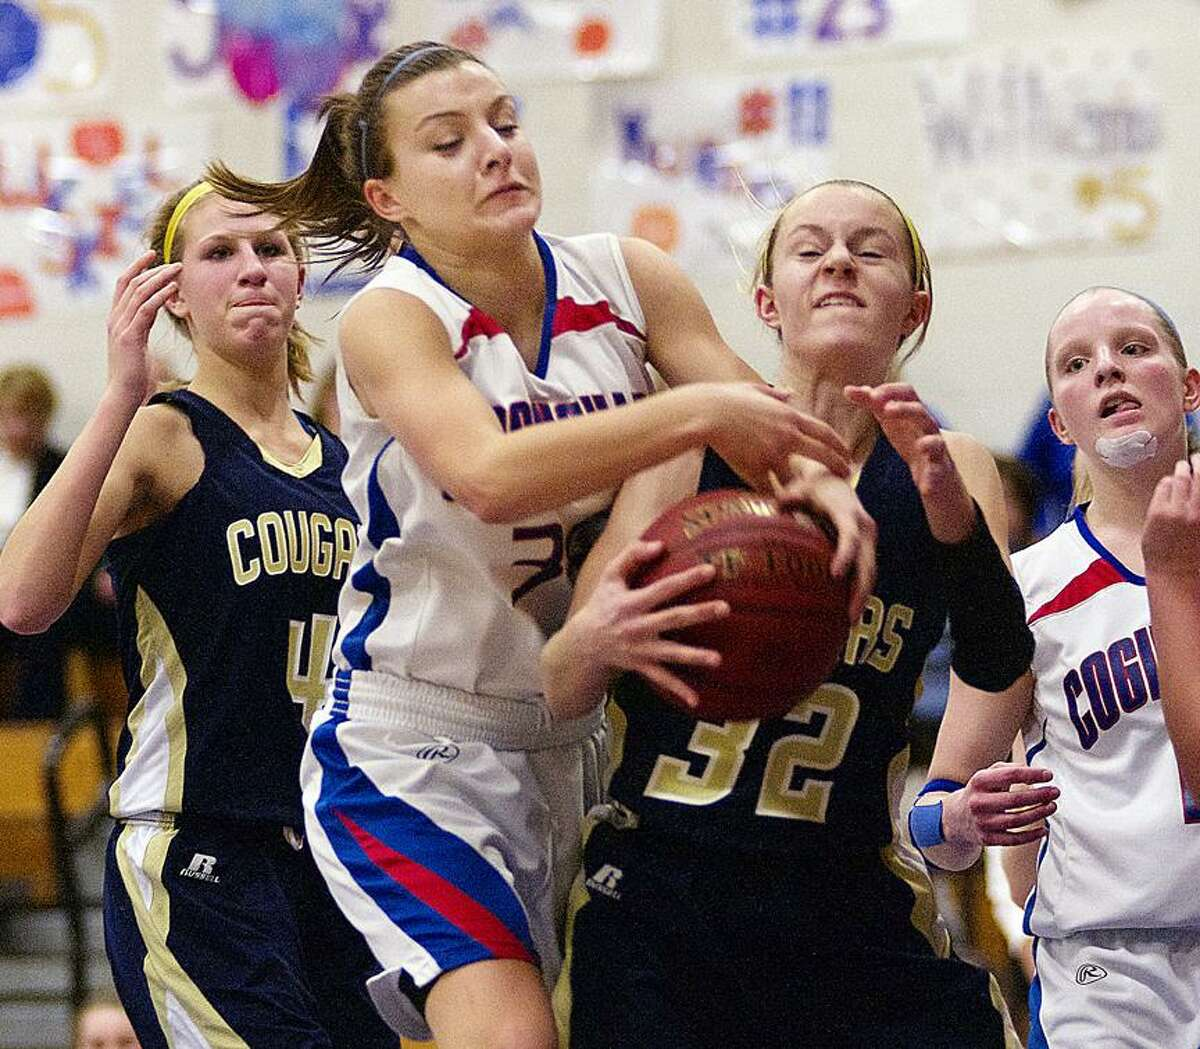 Catherine Avalone/The Middletown Press Coginchaug senior Jessica Solomon battles H-K sophomore Halie Serbent for a rebound. At left is Kiley Anderson (4) and junior forwardMorgan Kuehnle at right. The H-K Cougars came from behind to defeat the Coginchaug Blue Devils 43-39.